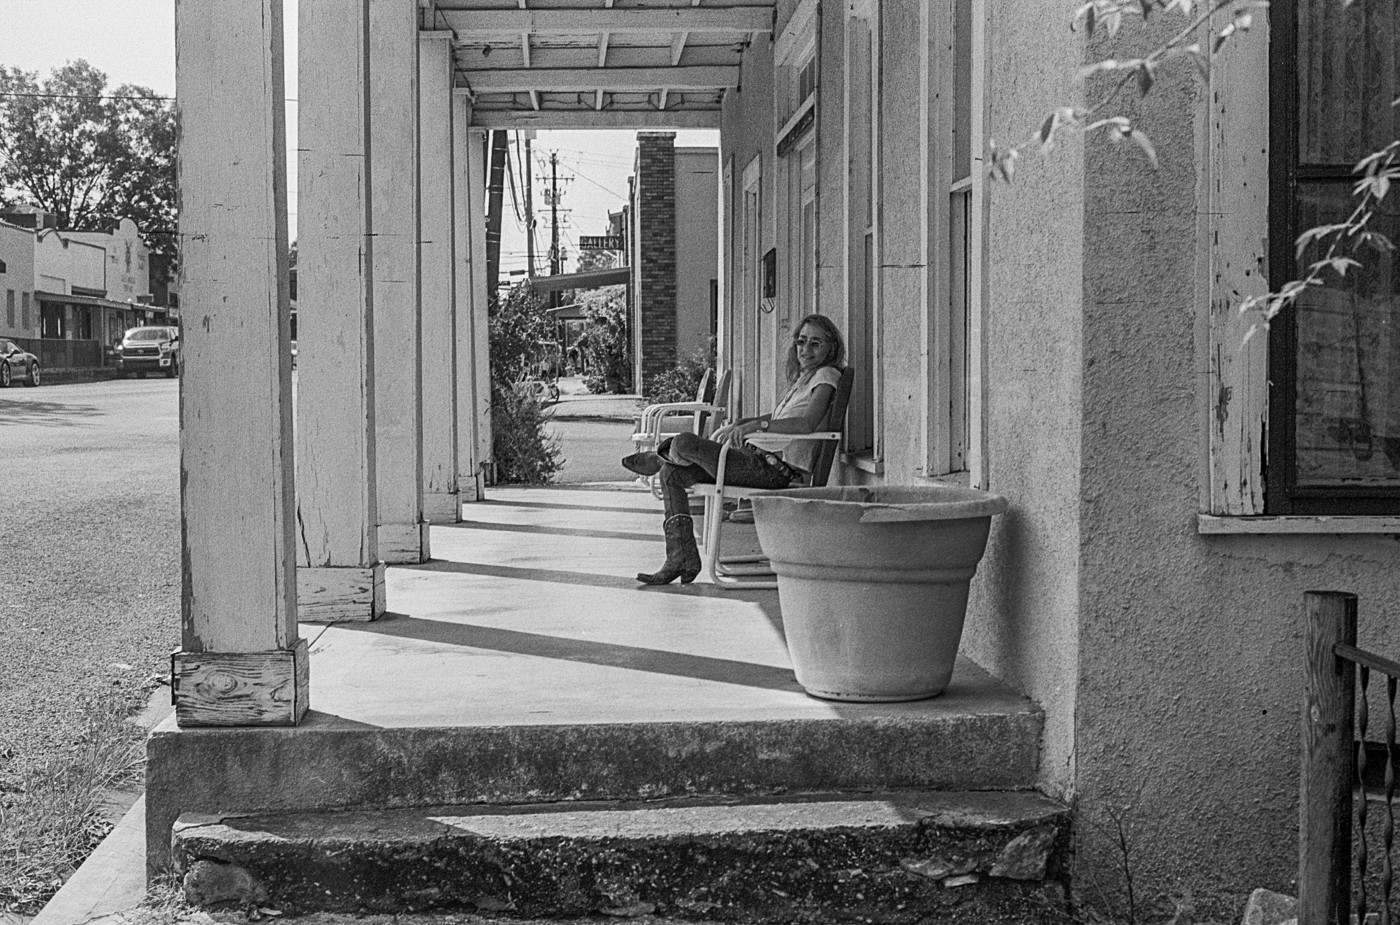 Black and white photo of a woman in a chair on a porch, with cowboy boots and sunglasses on